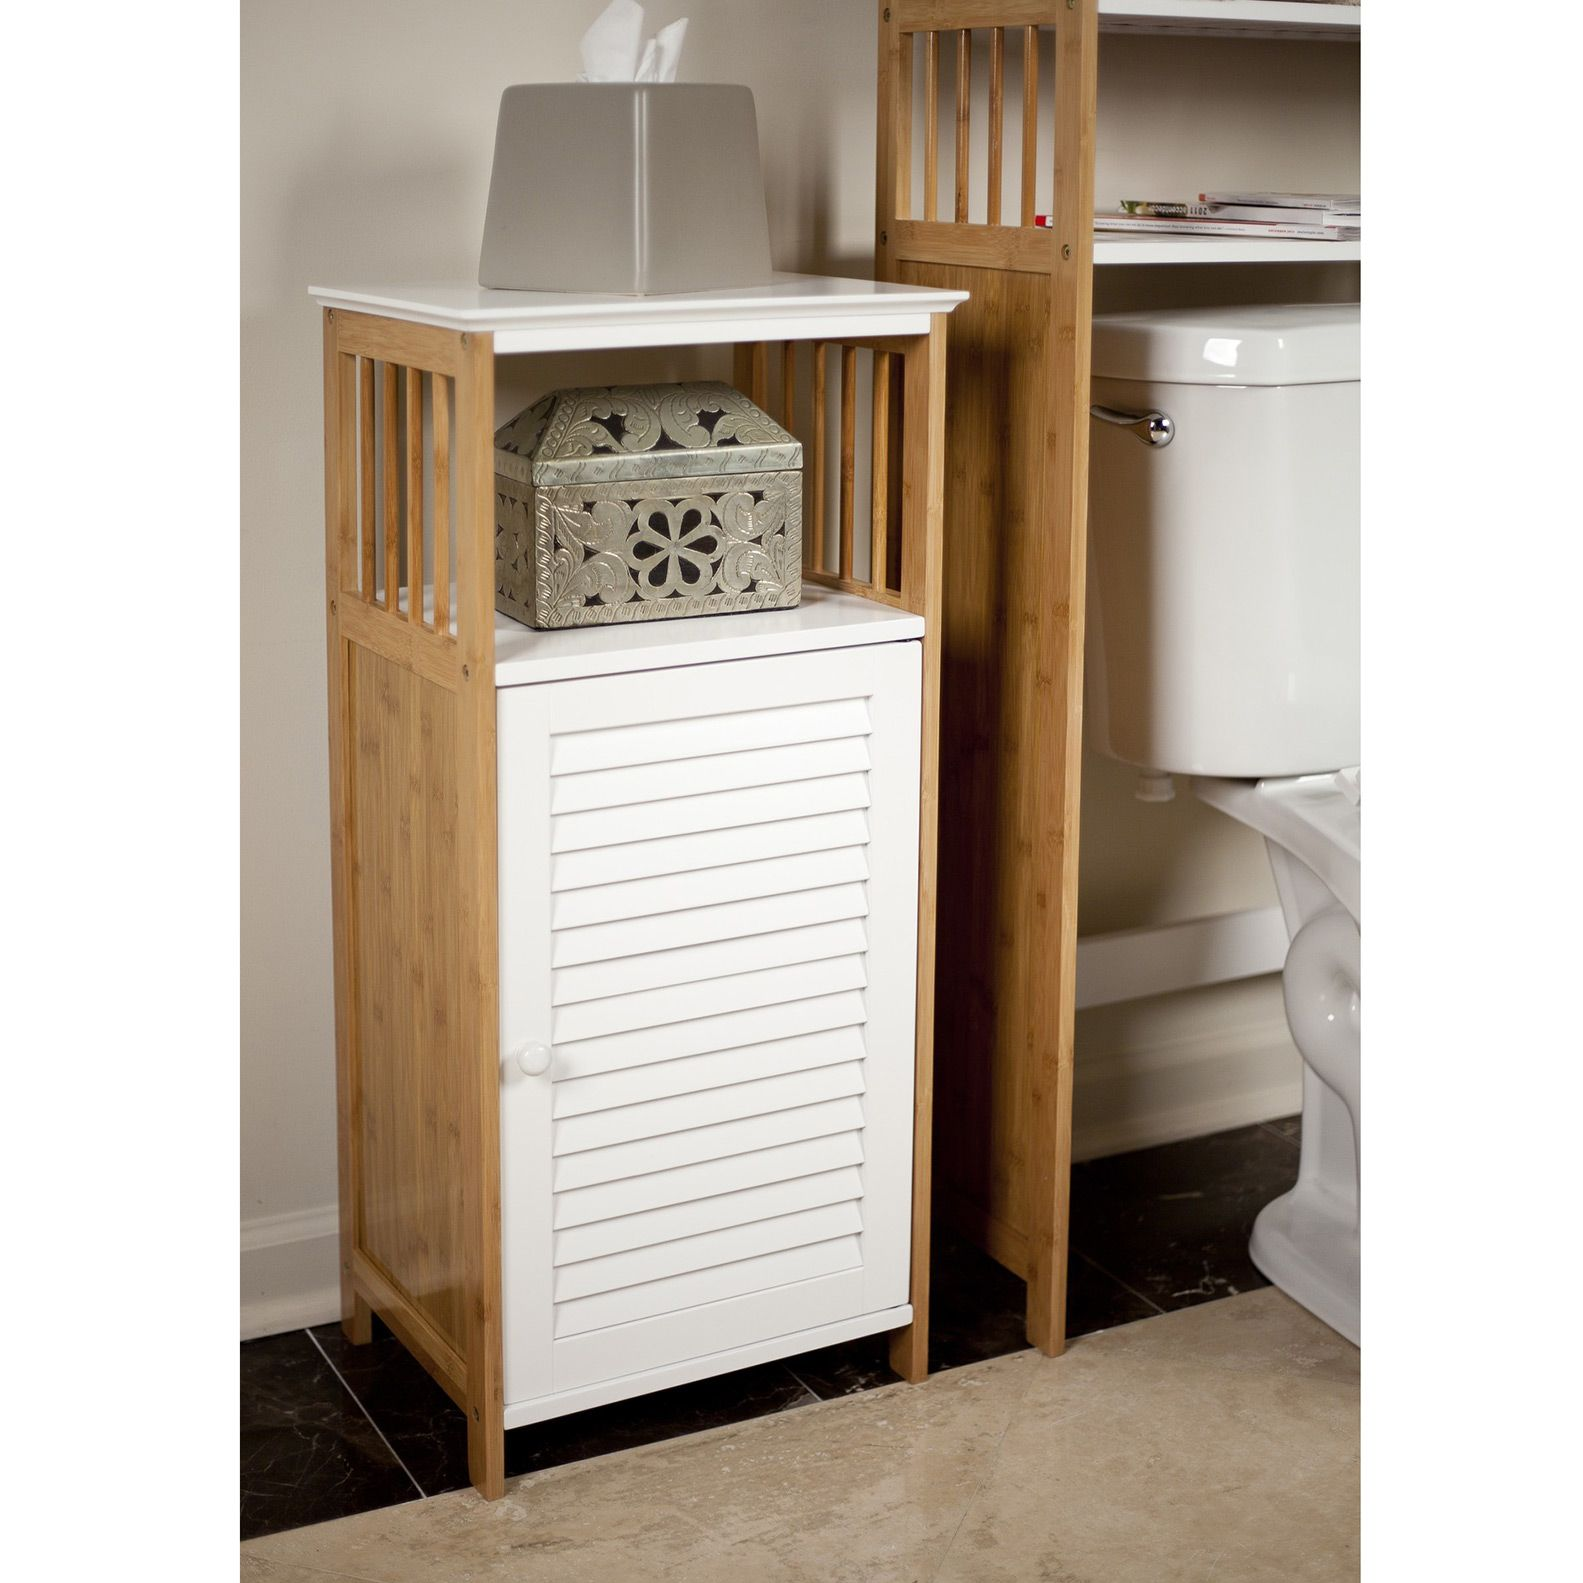 Bamboo Bath Storage Cabinet - Dot & Bo | Bathroom floor ...